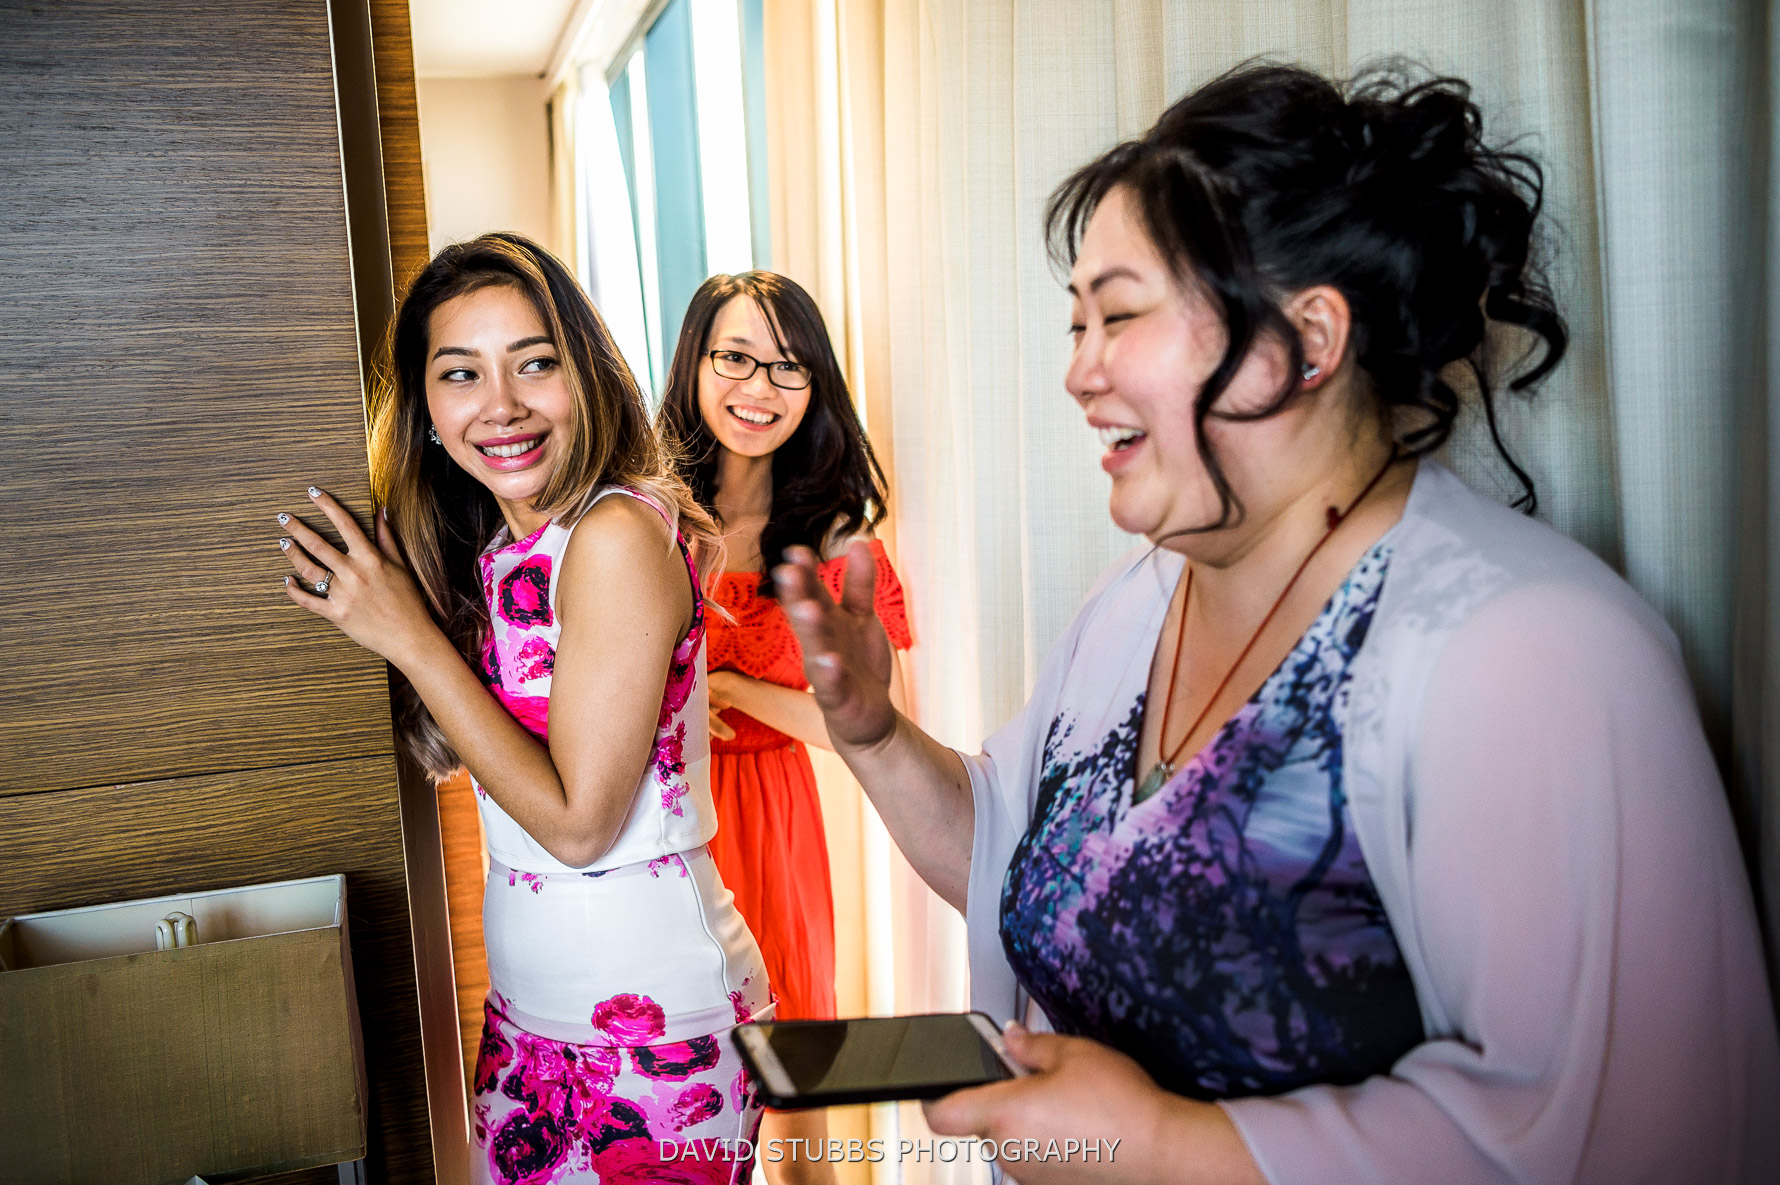 girls together in hotel room